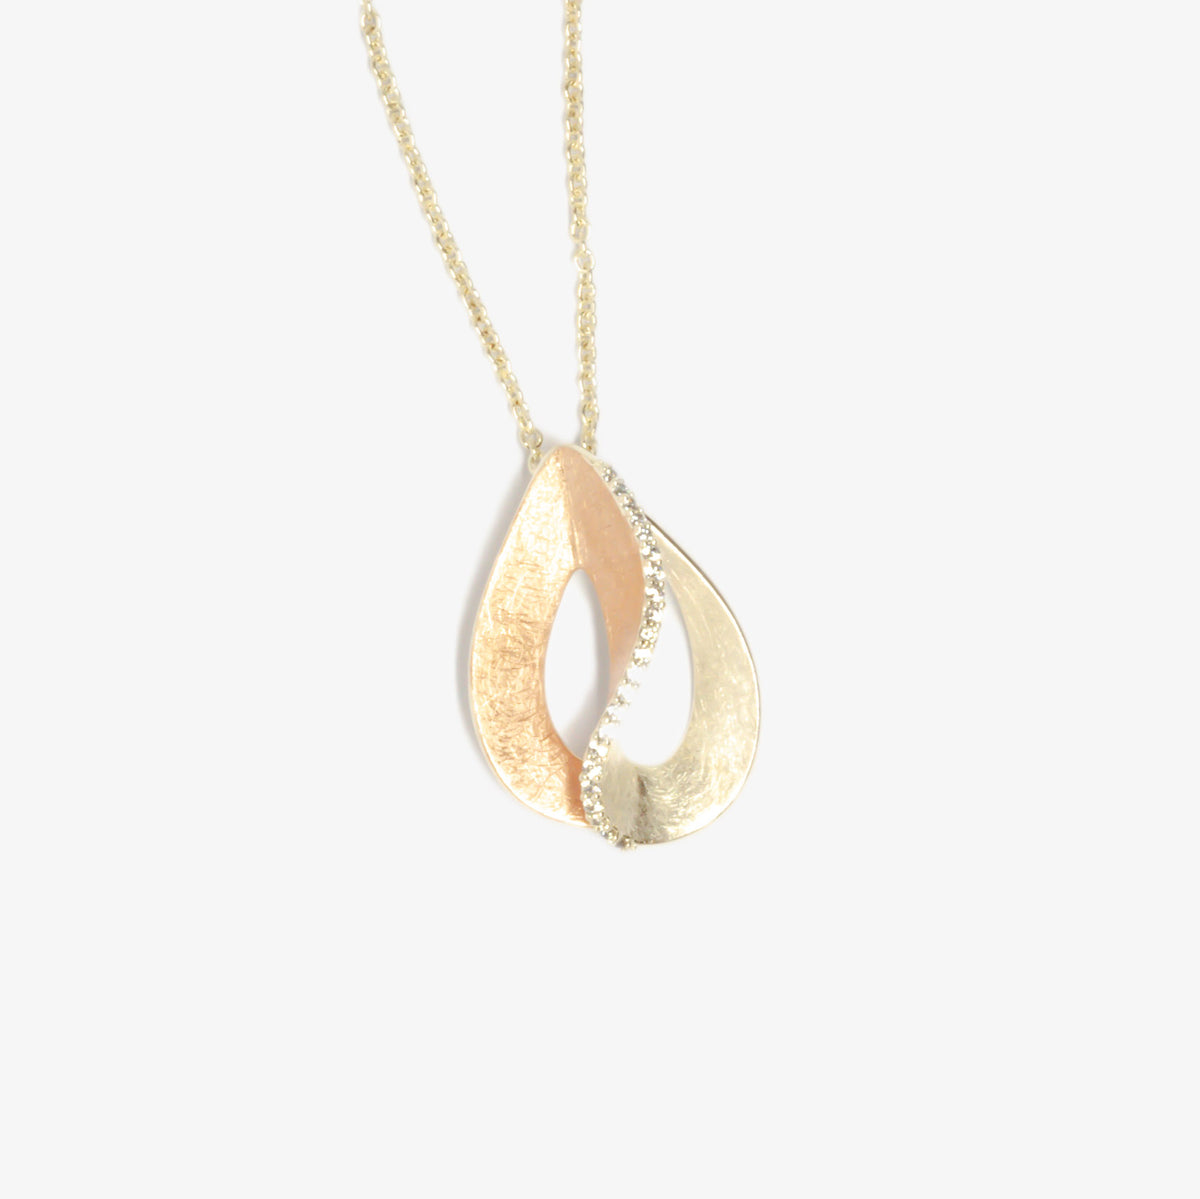 Silver Rose Gold Plated Pear Shape Pendant Necklace